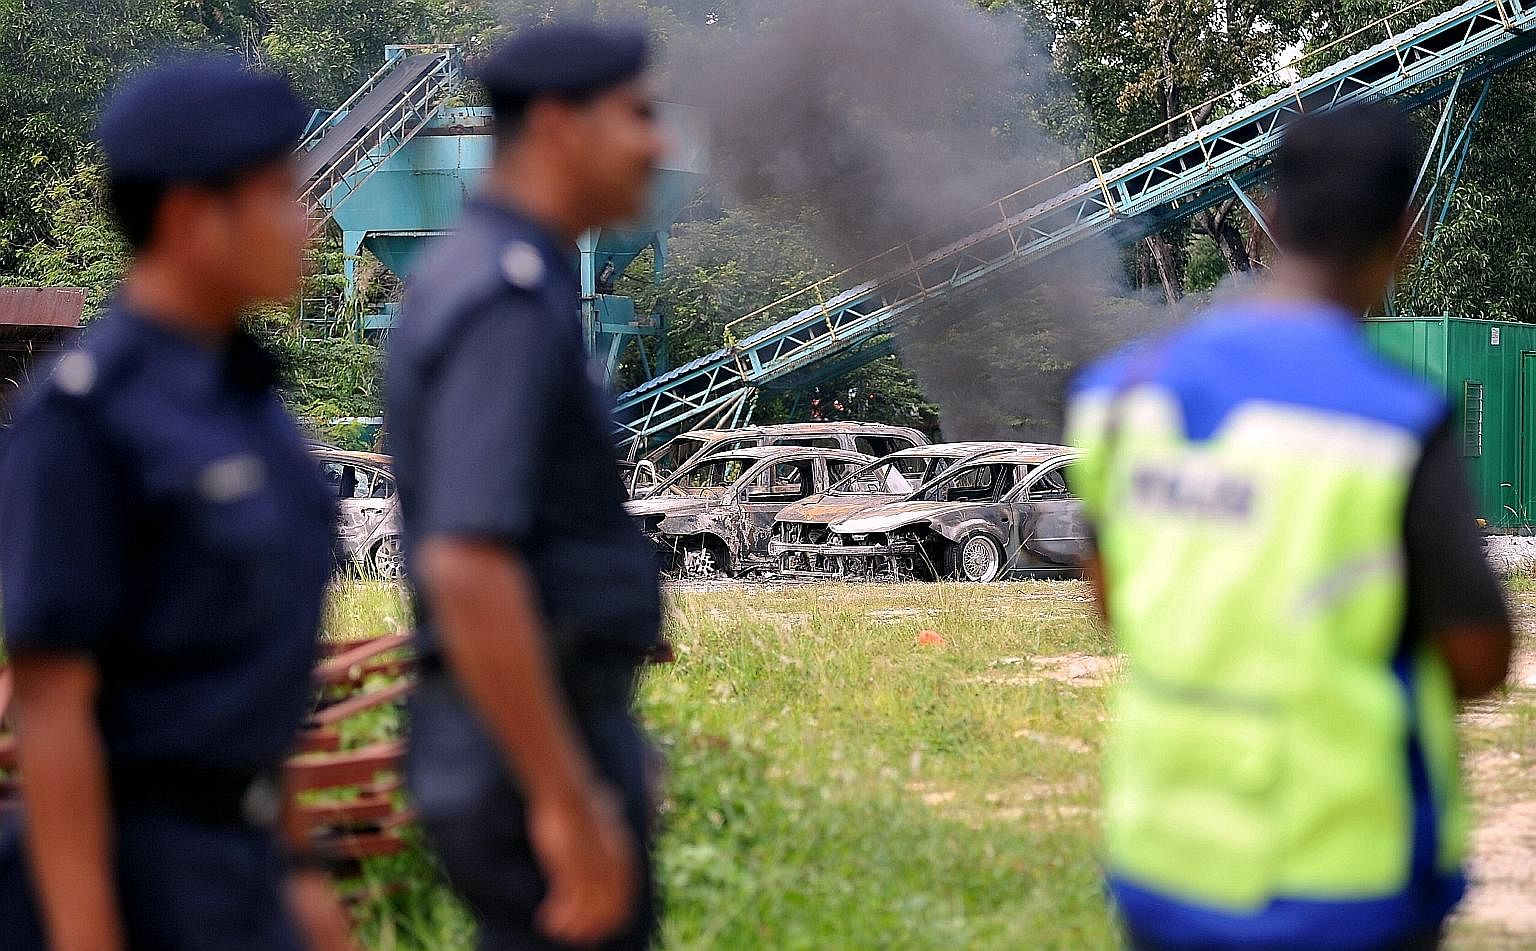 Policemen at the site of the Maha Mariamman Temple, where a riot broke out on Monday. In the background are some cars that were badly burnt in the incident. Prime Minister Mahathir Mohamad warns that those responsible will face stern action.